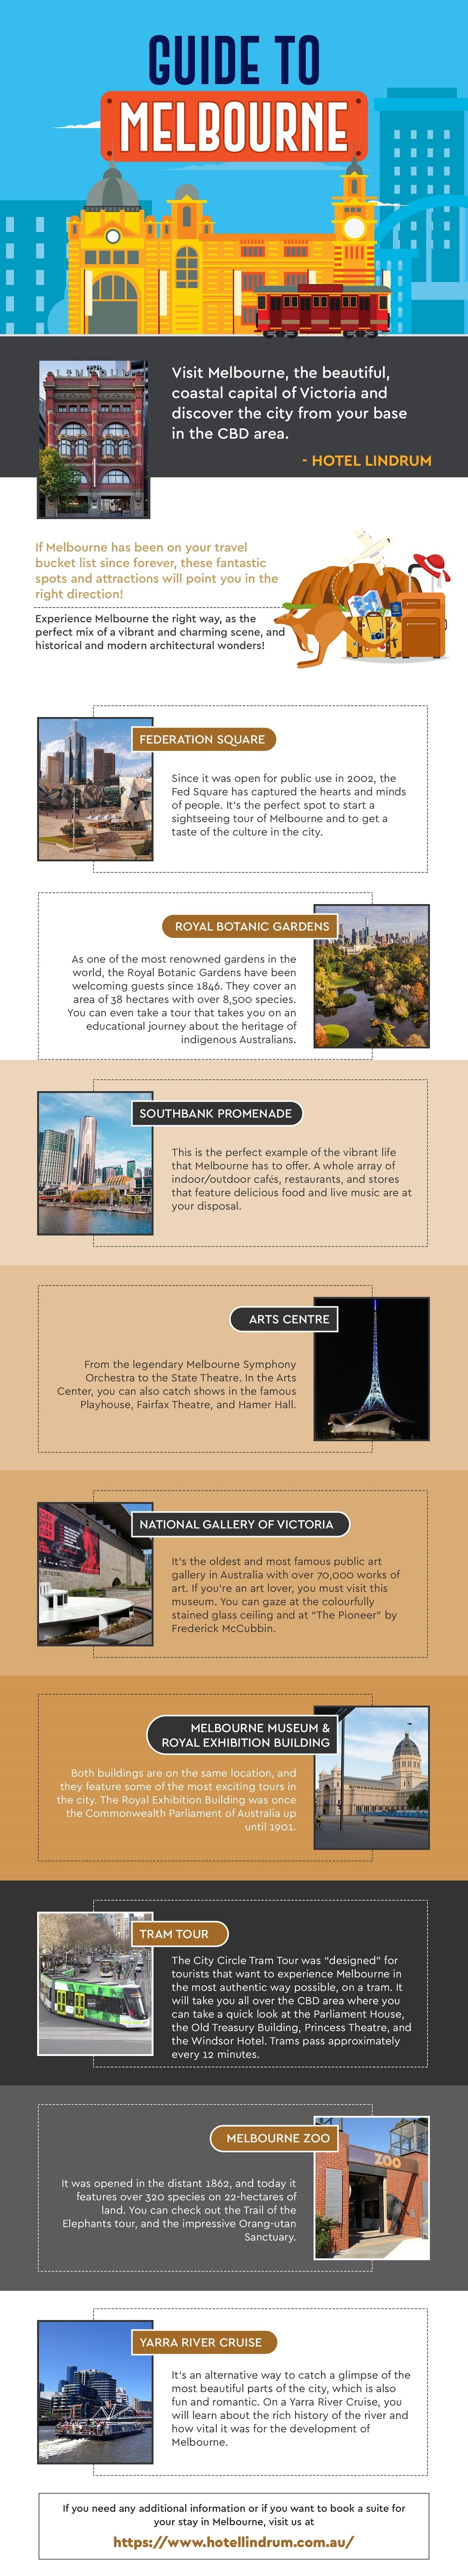 Guide to Melbourne #infographic